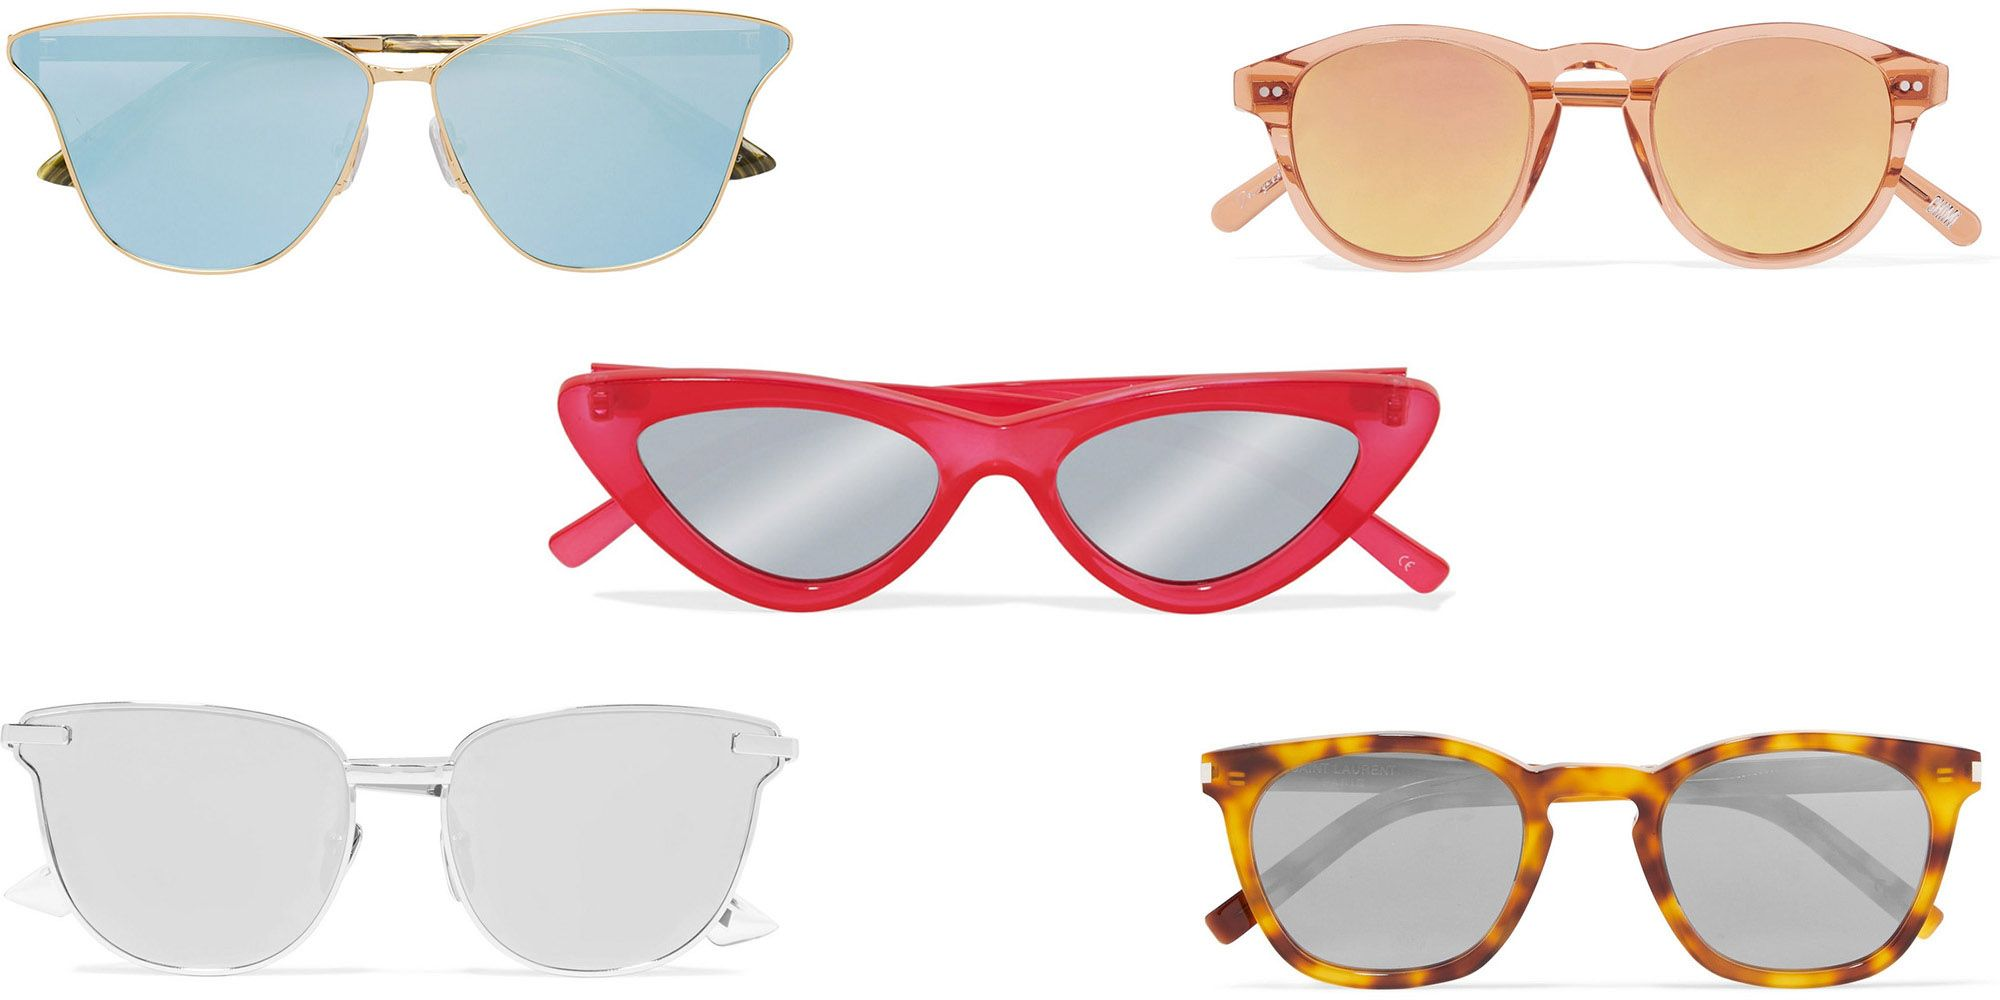 03a9ad963a Mirrored Sunglasses for Women - Mirrored Lens Sunglasses